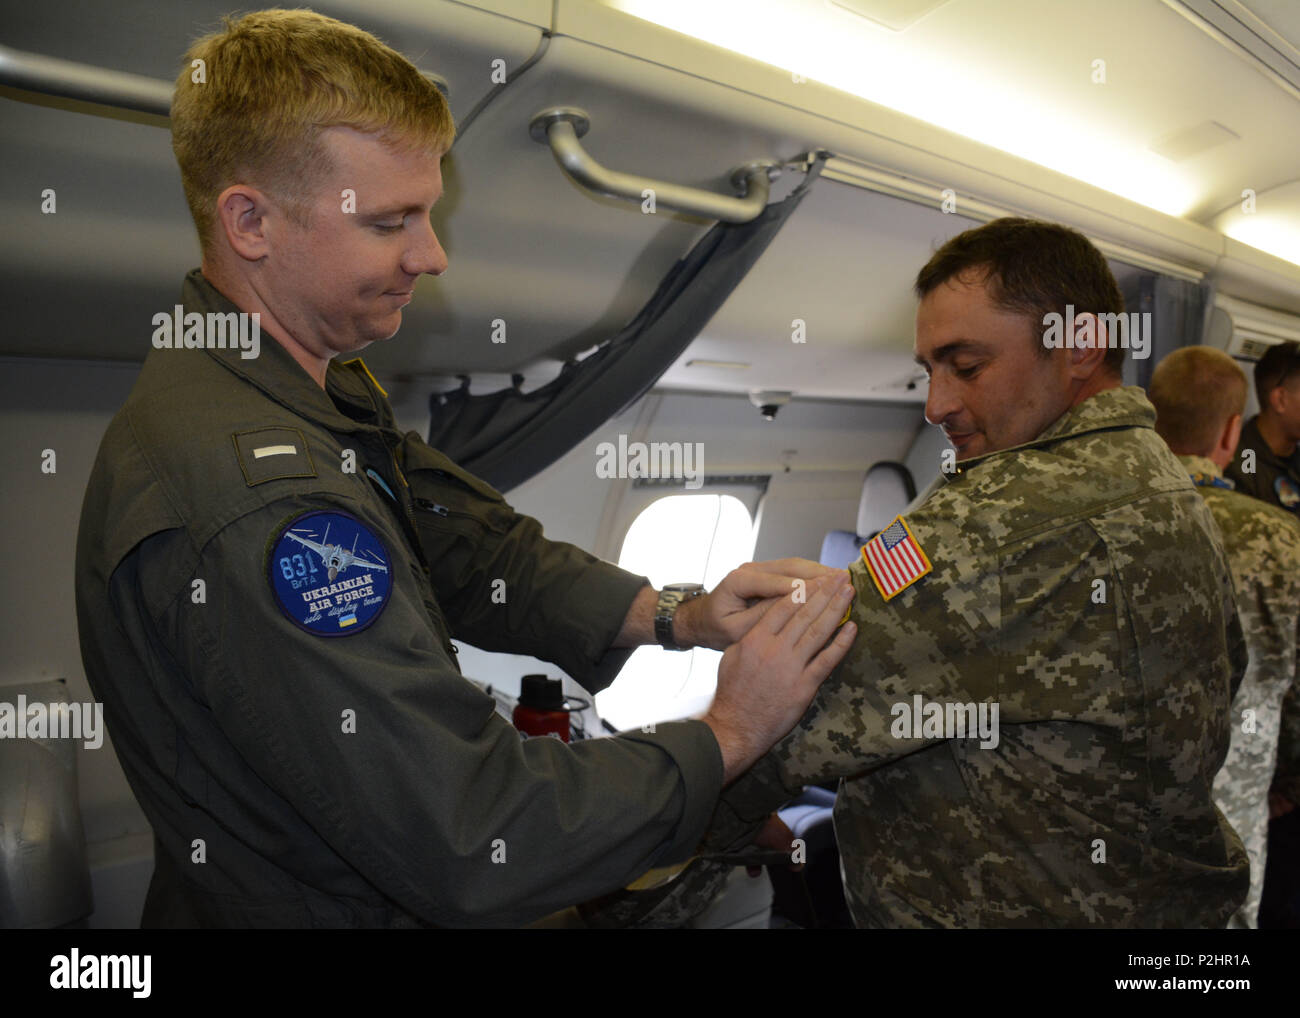 160924-N-HH215-044  LUQA, Malta. (Sept. 24, 2016) Lt. j.g. Tanner Anjola, left, Patrol Squadron (VP) 45 co-tactical coordinator, presents a P-8A Poseidon aircraft patch to Ukrainian Air Force (UAF) Capt. Karabeza Dmytro after receiving a UAF patch during a static display at the 2016 Malta International Airshow, Sept. 24. U.S. 6th Fleet, headquartered in Naples, Italy, conducts the full spectrum of joint and naval operations, often in concert with allied, joint, and interagency partners, in order to advance U.S. national interests and security and stability in Europe and Africa. (U.S. Navy phot Stock Photo